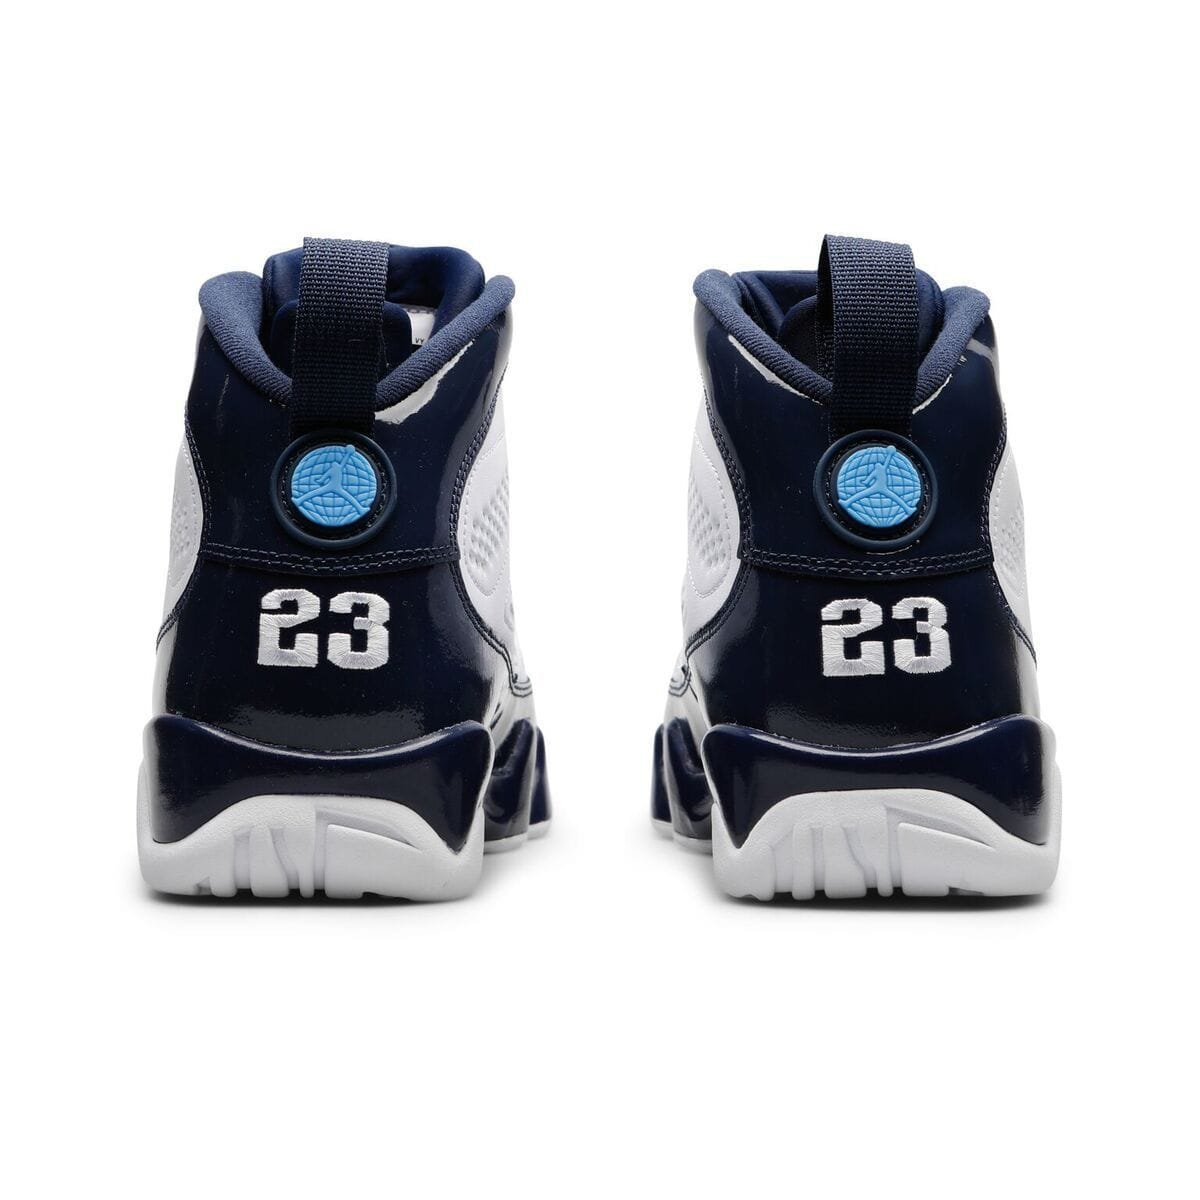 0079f85a7c0 AIR JORDAN 9 RETRO (WHITE/UNIVERSITY BLUE-MIDNIGHT NAVY) [302370-145 ...